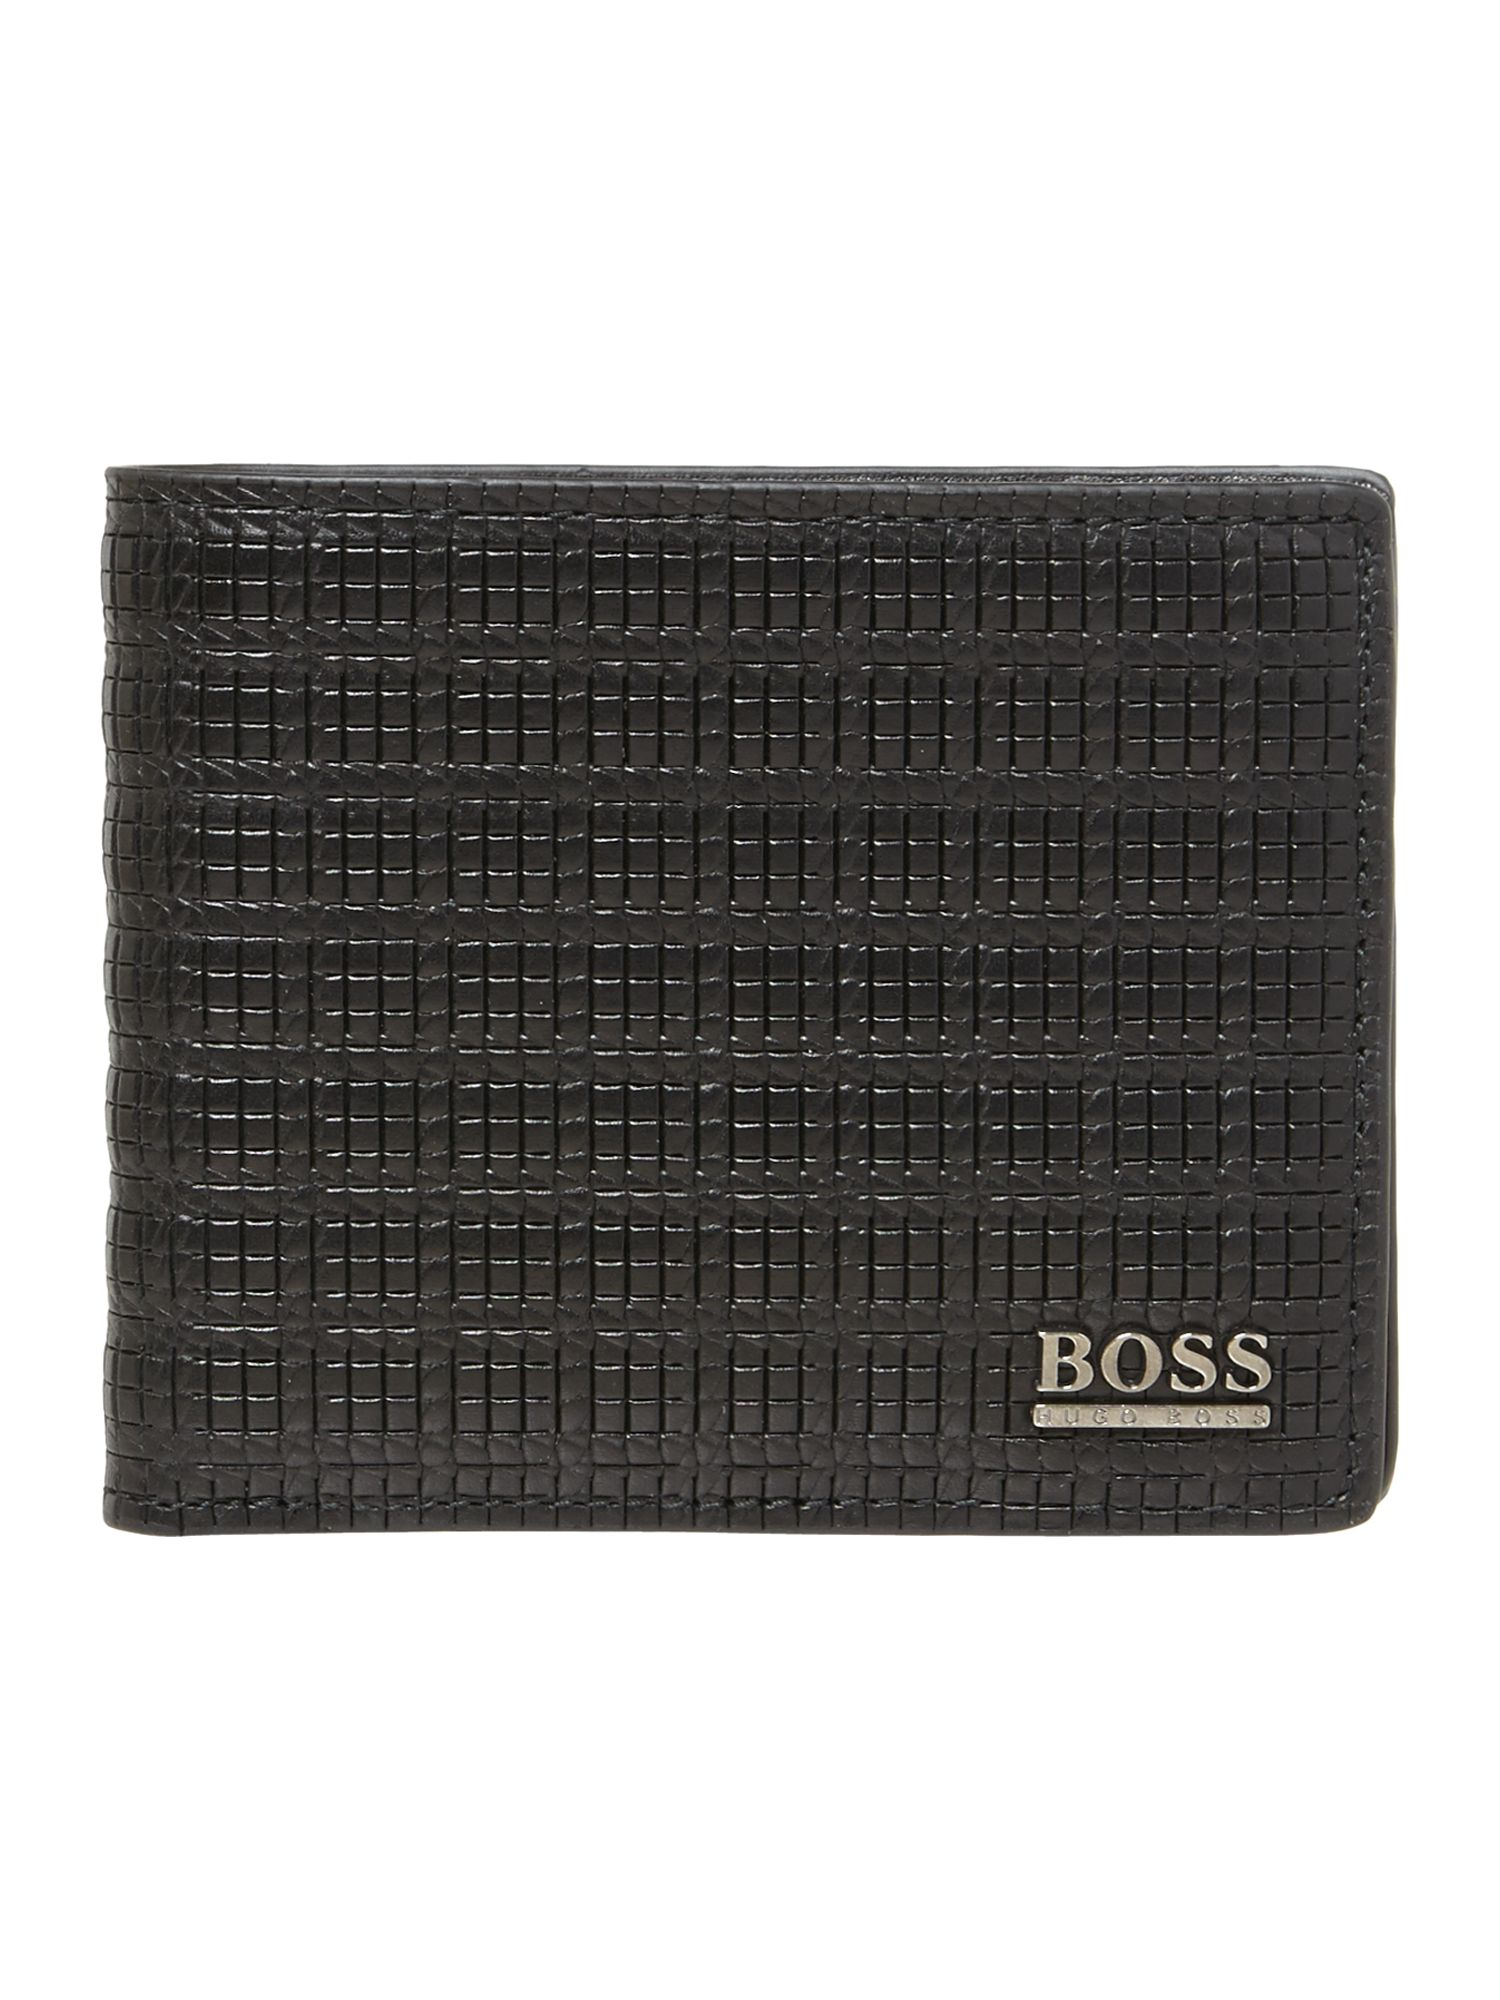 Shandy textured billfold wallet